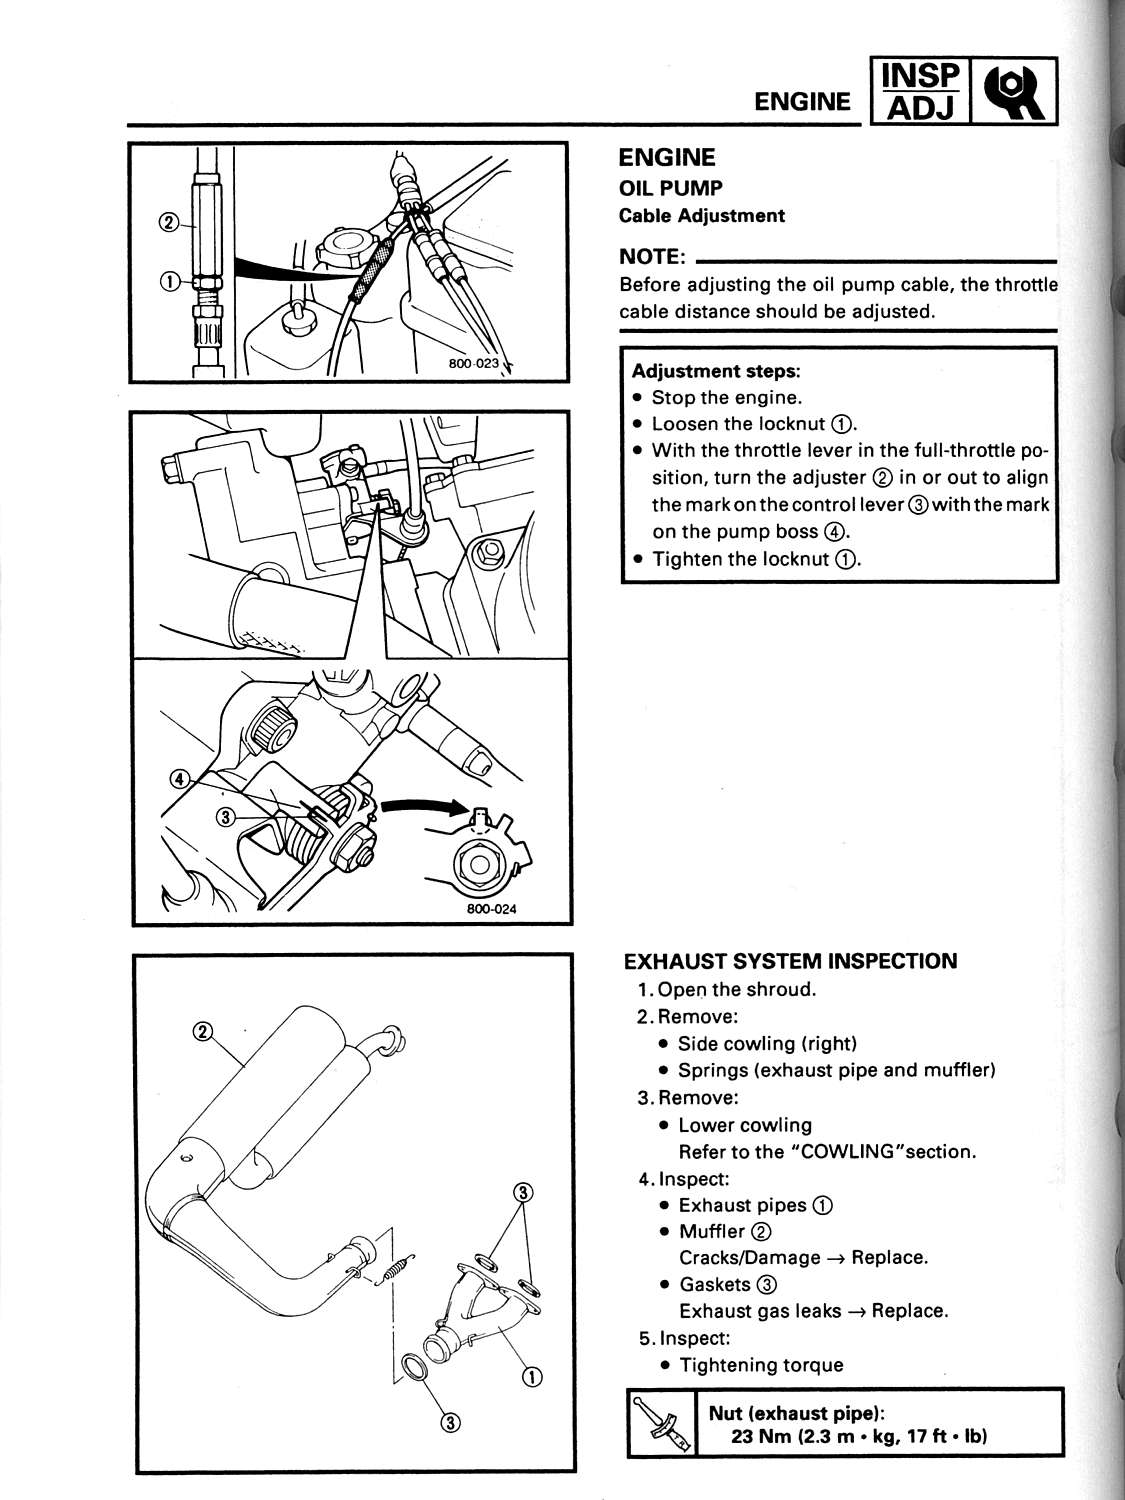 Carburetor Diagram For 1997 Yamaha Vmax 600, Carburetor